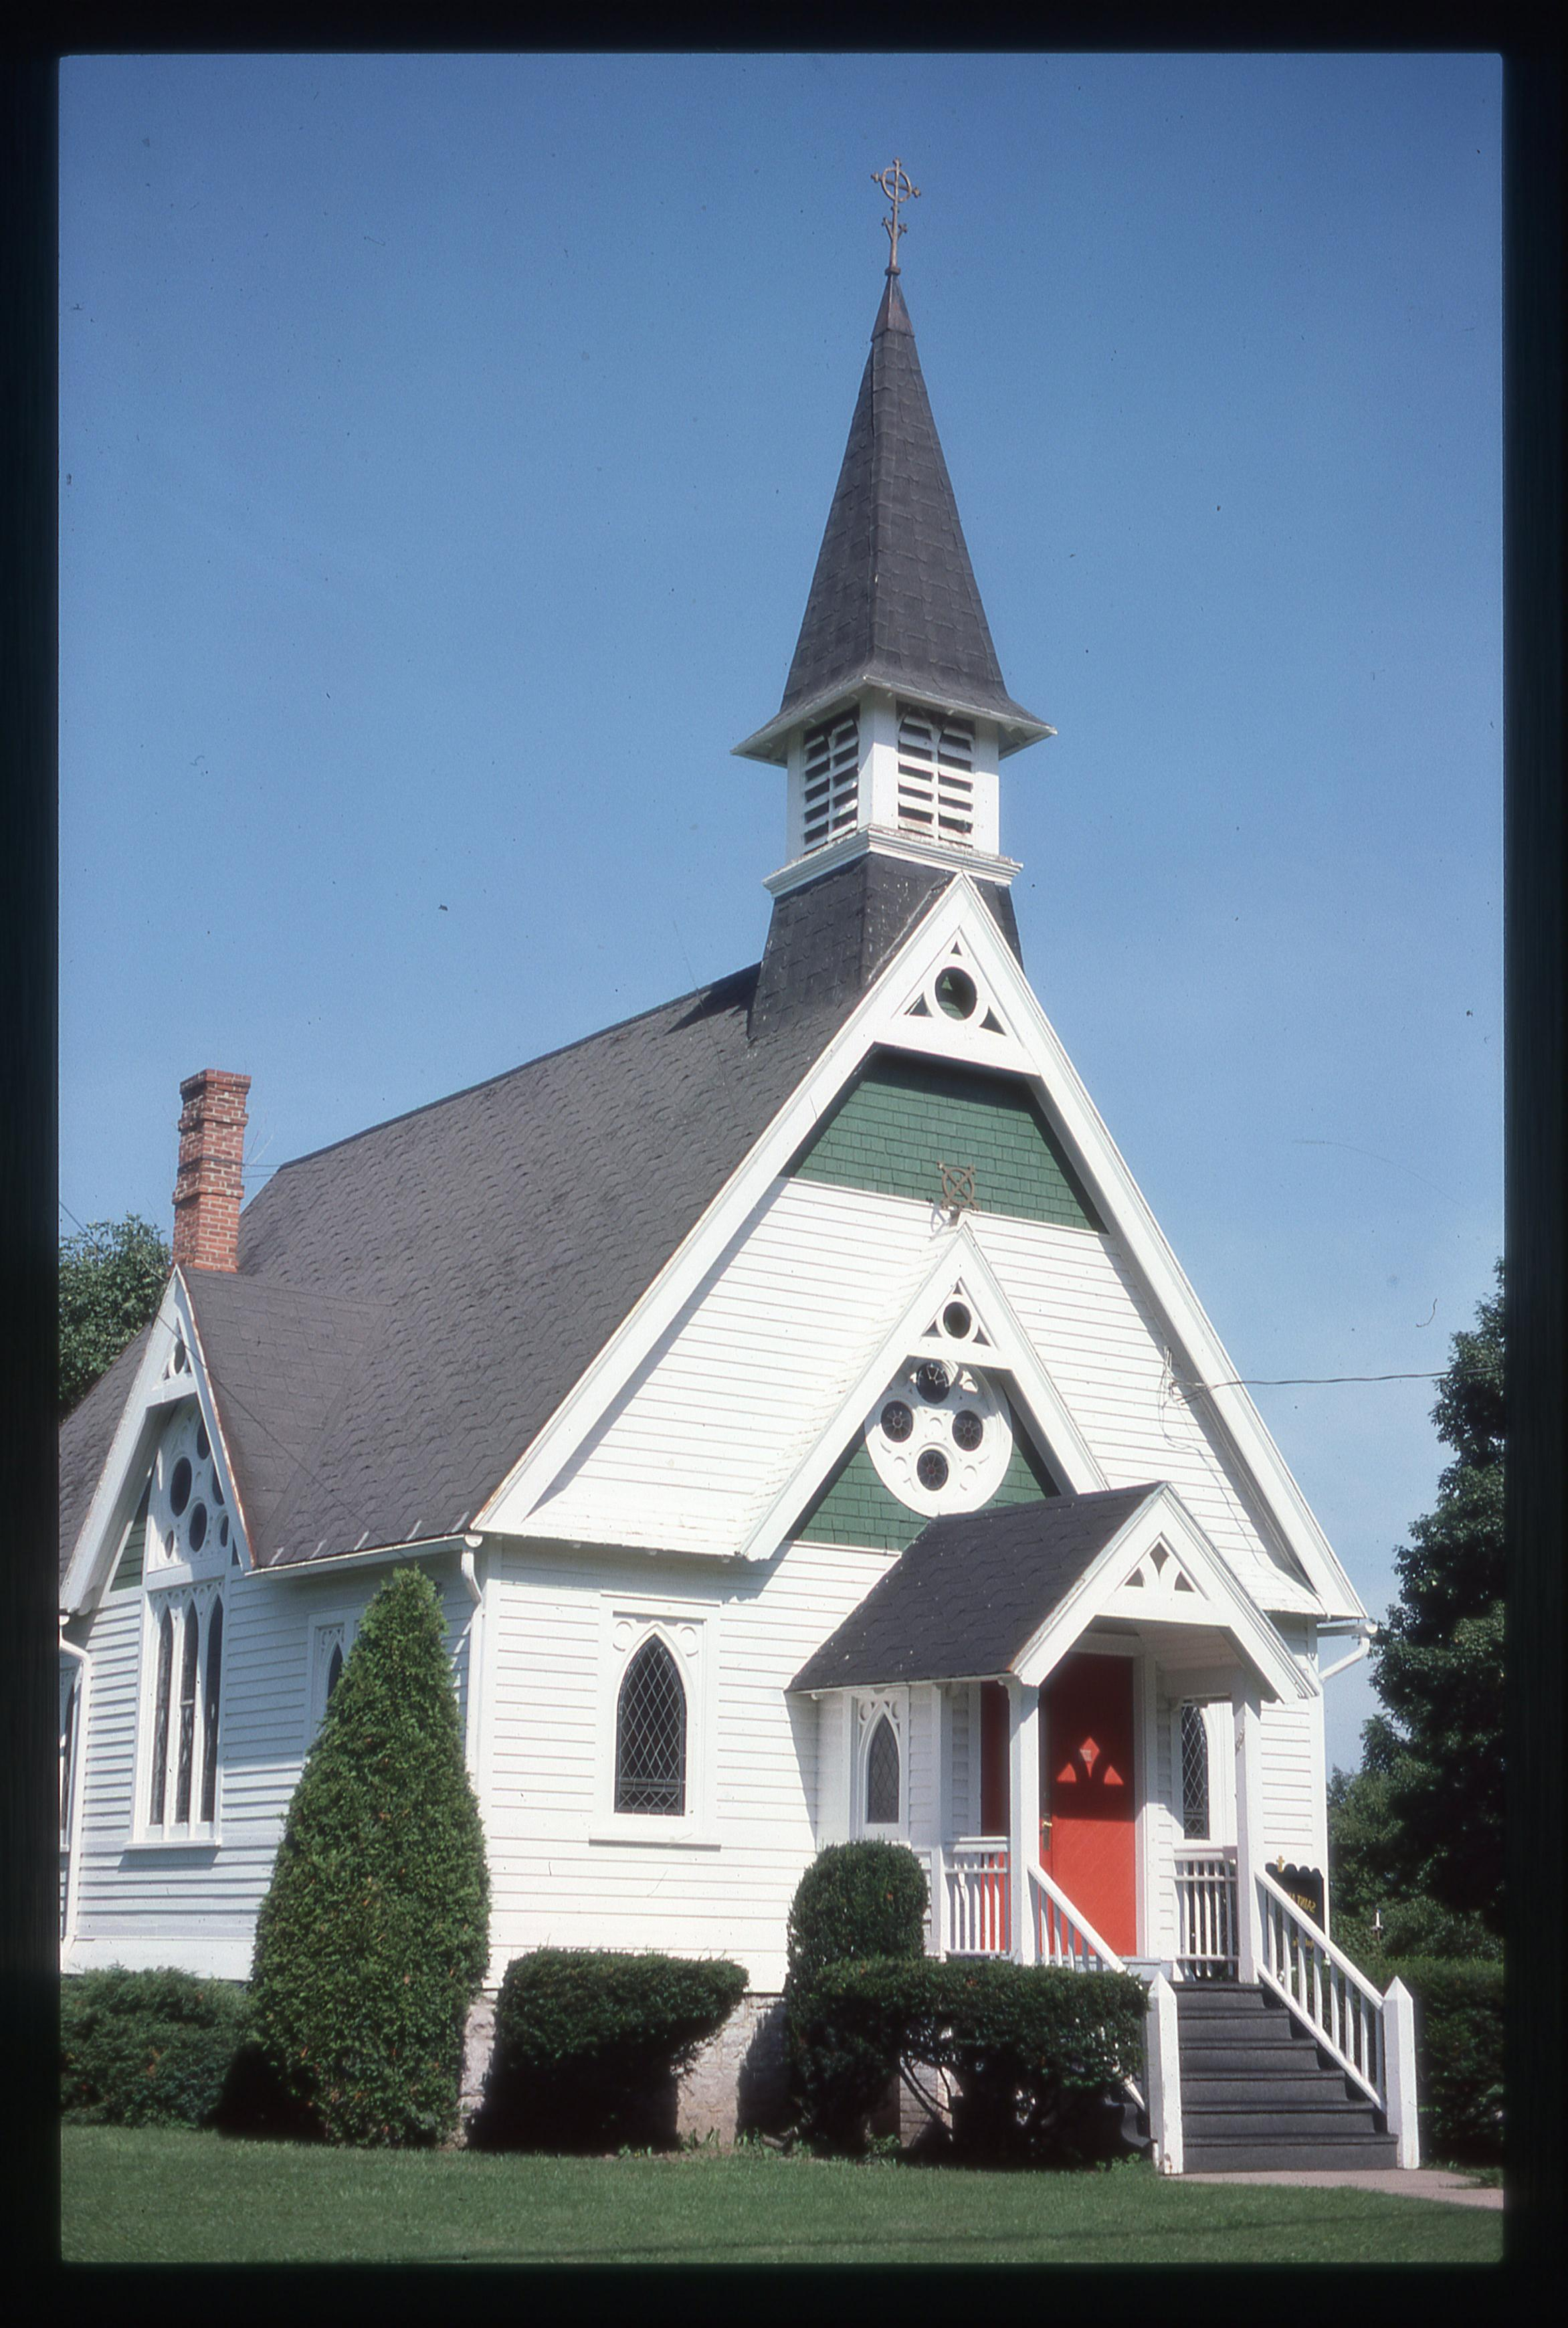 Image of St. Andrew's Church in Caledonia